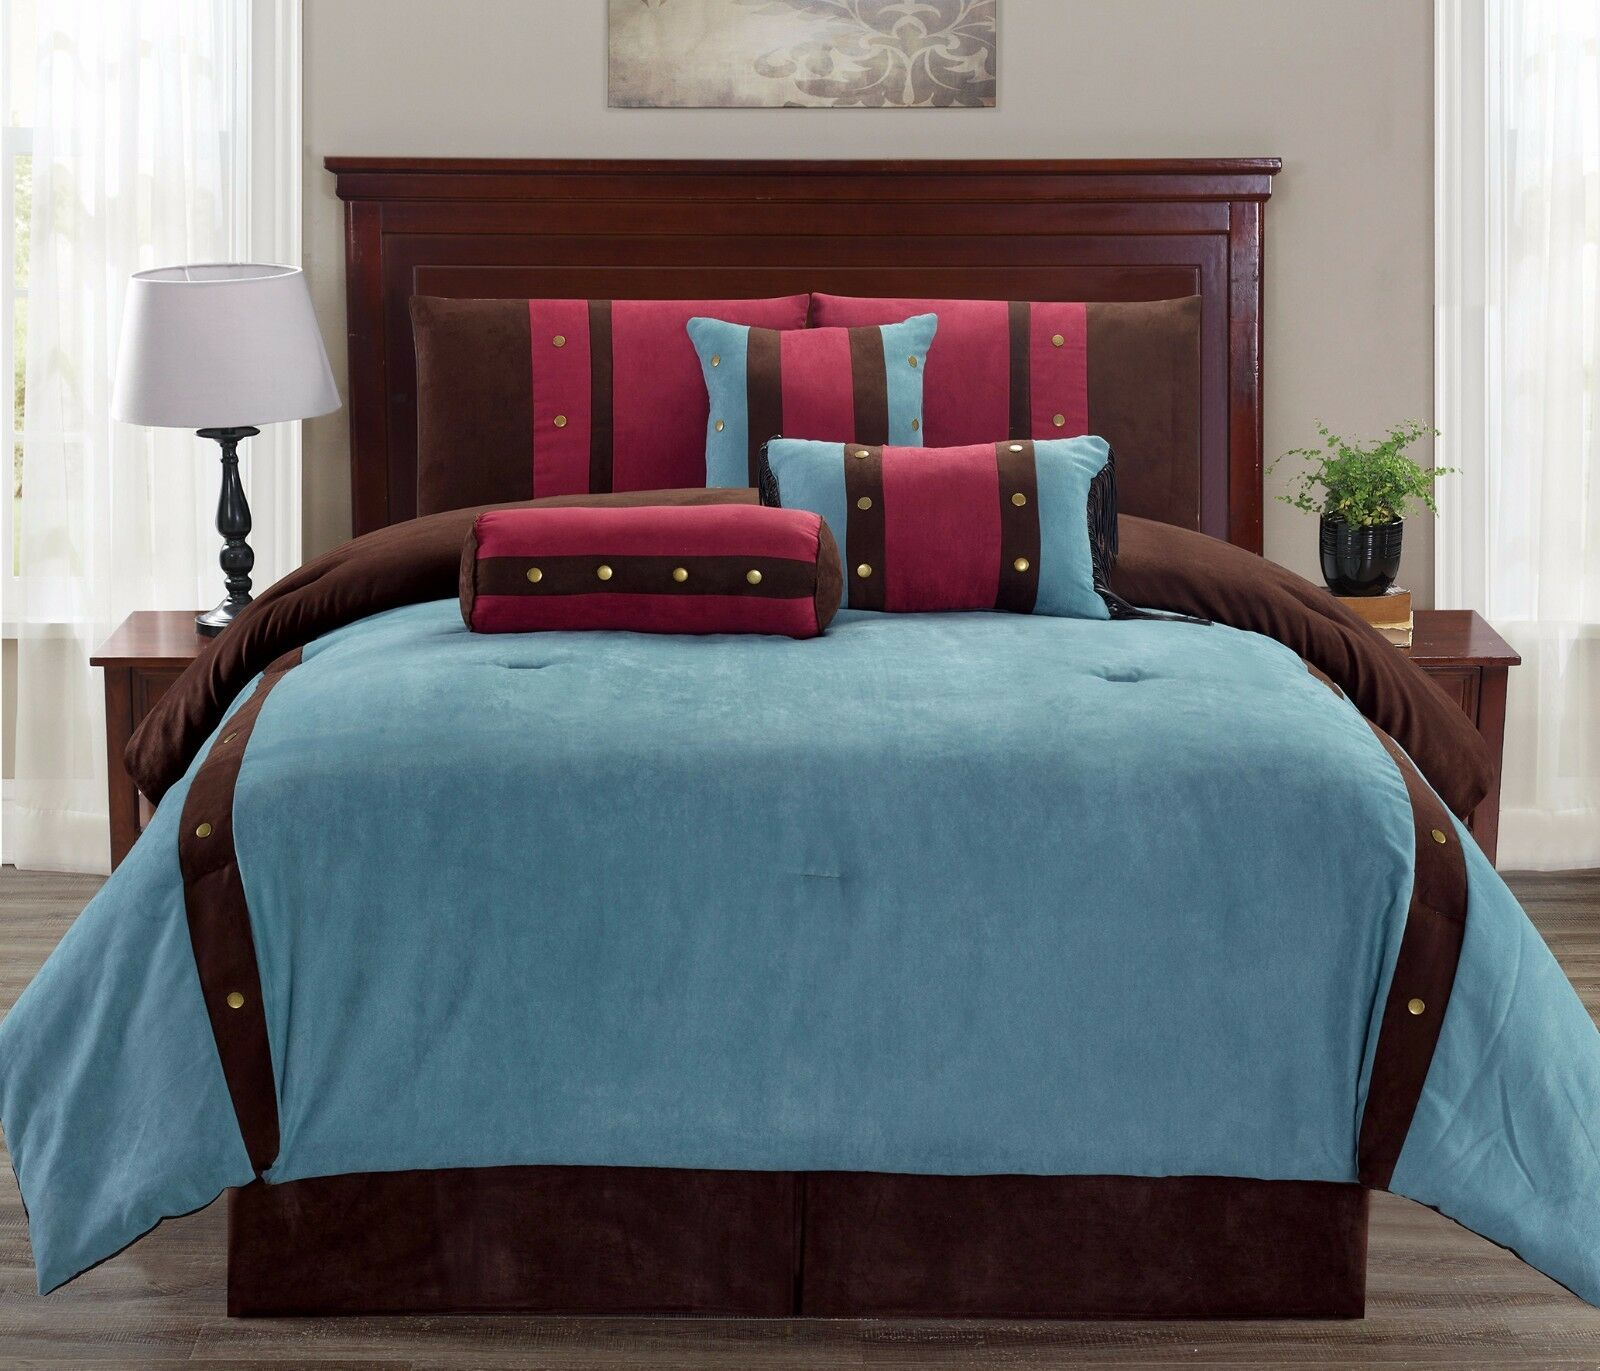 7pc Micro Suede Teal, braun & Burgundy Striped Comforter Set with Button Accents